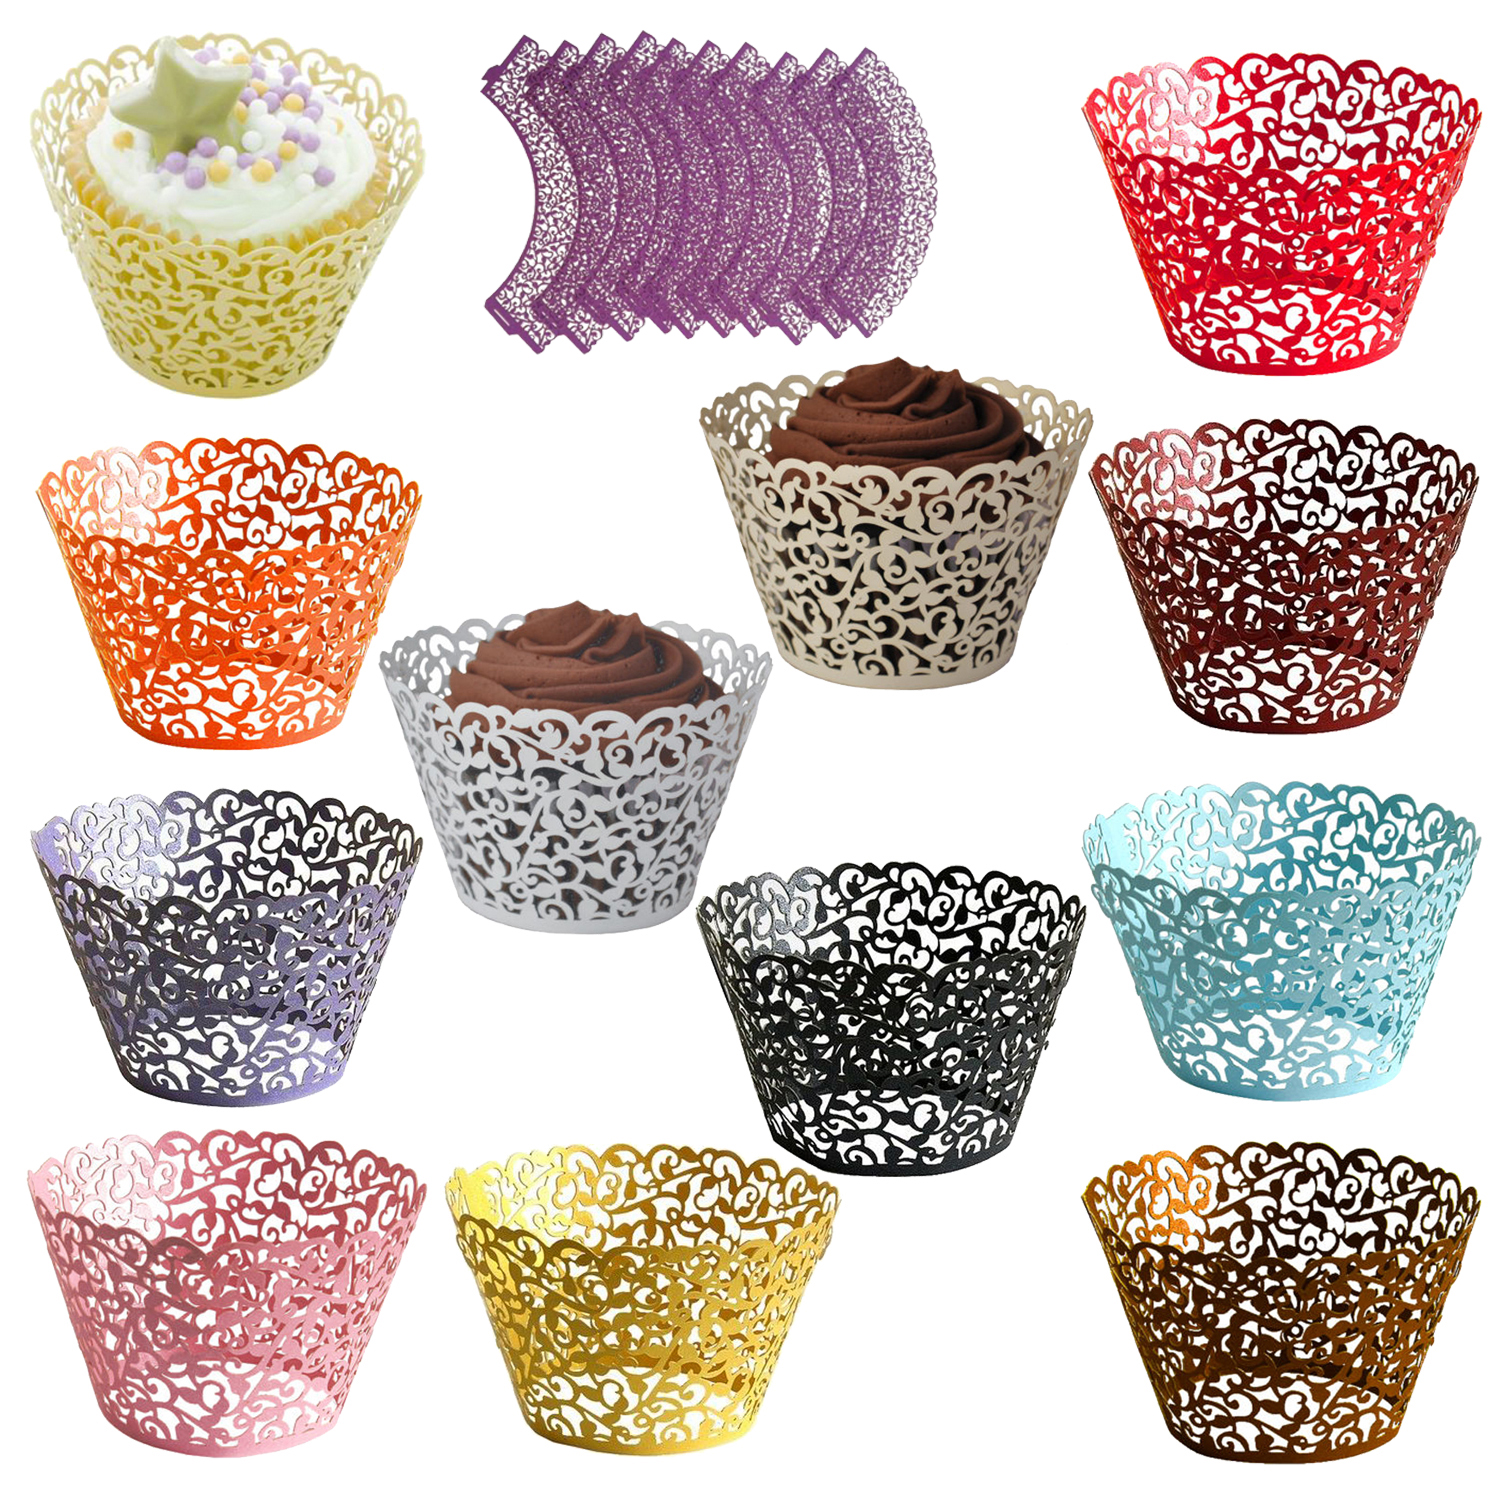 Details About 1xfiligree Vintage Cupcake Wrappers Wraps Cases Wedding Birthday V4g1